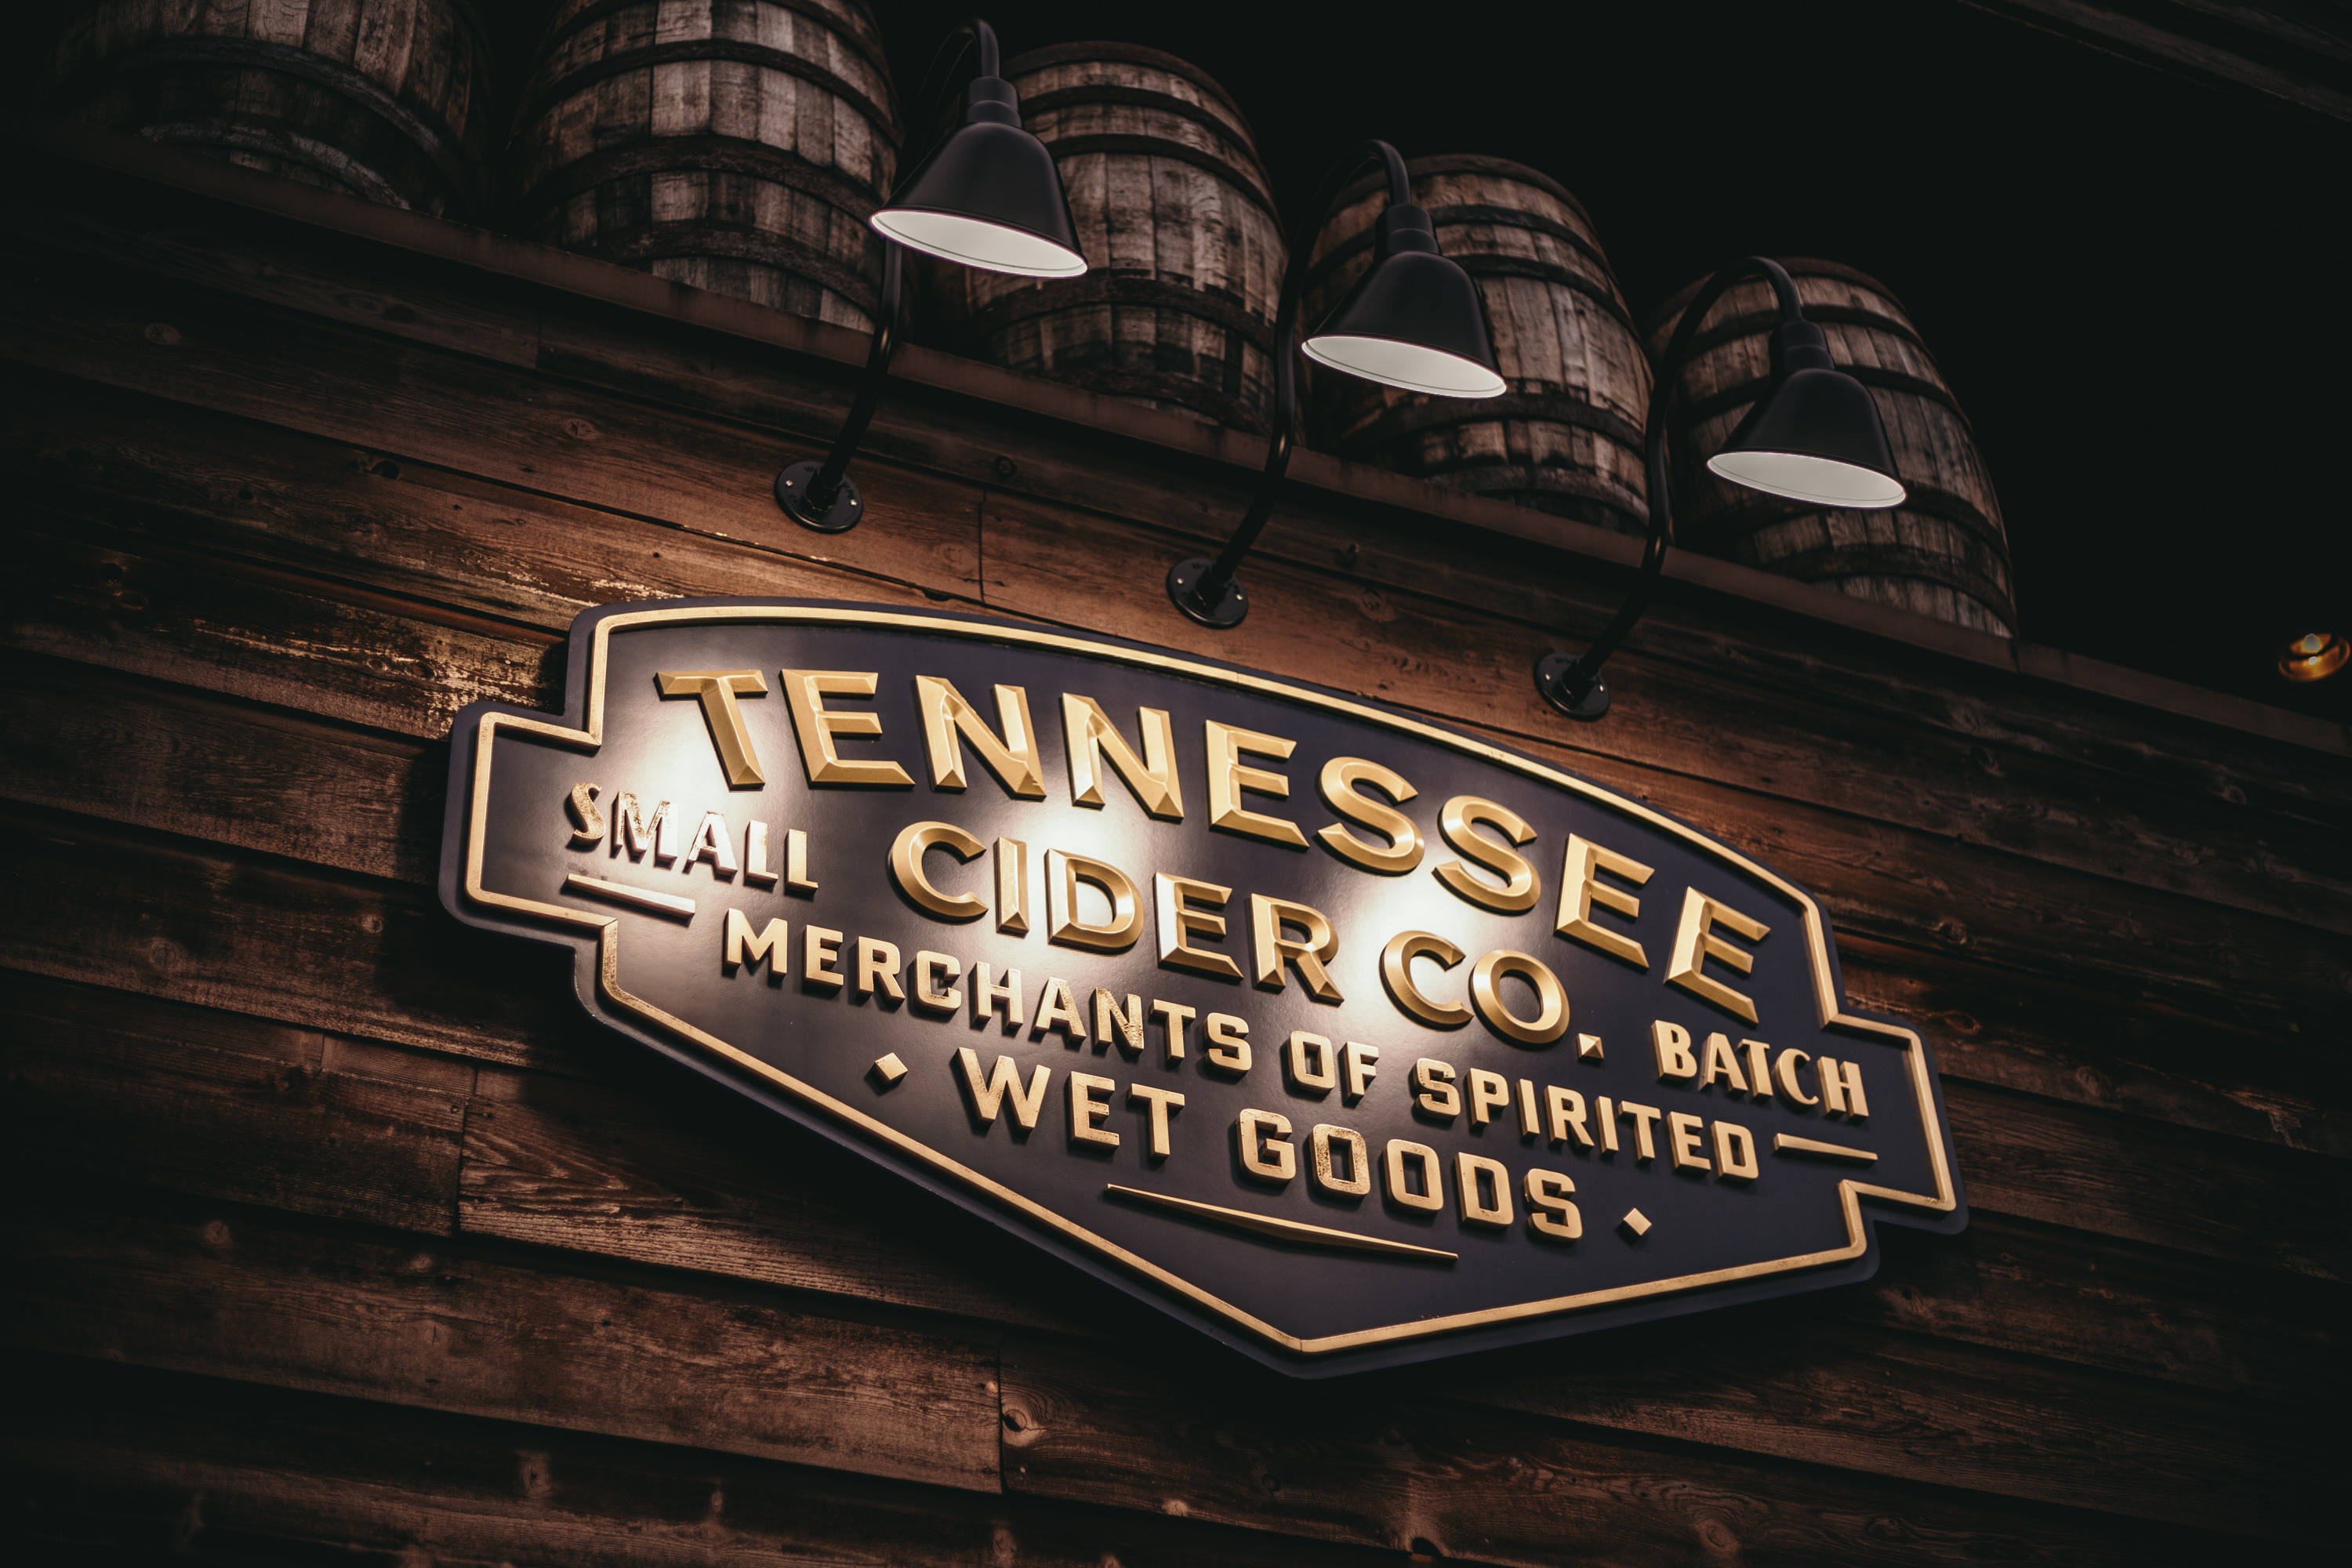 Tennessee Cider Company Plaque in the Gatlinburg Tennessee Location